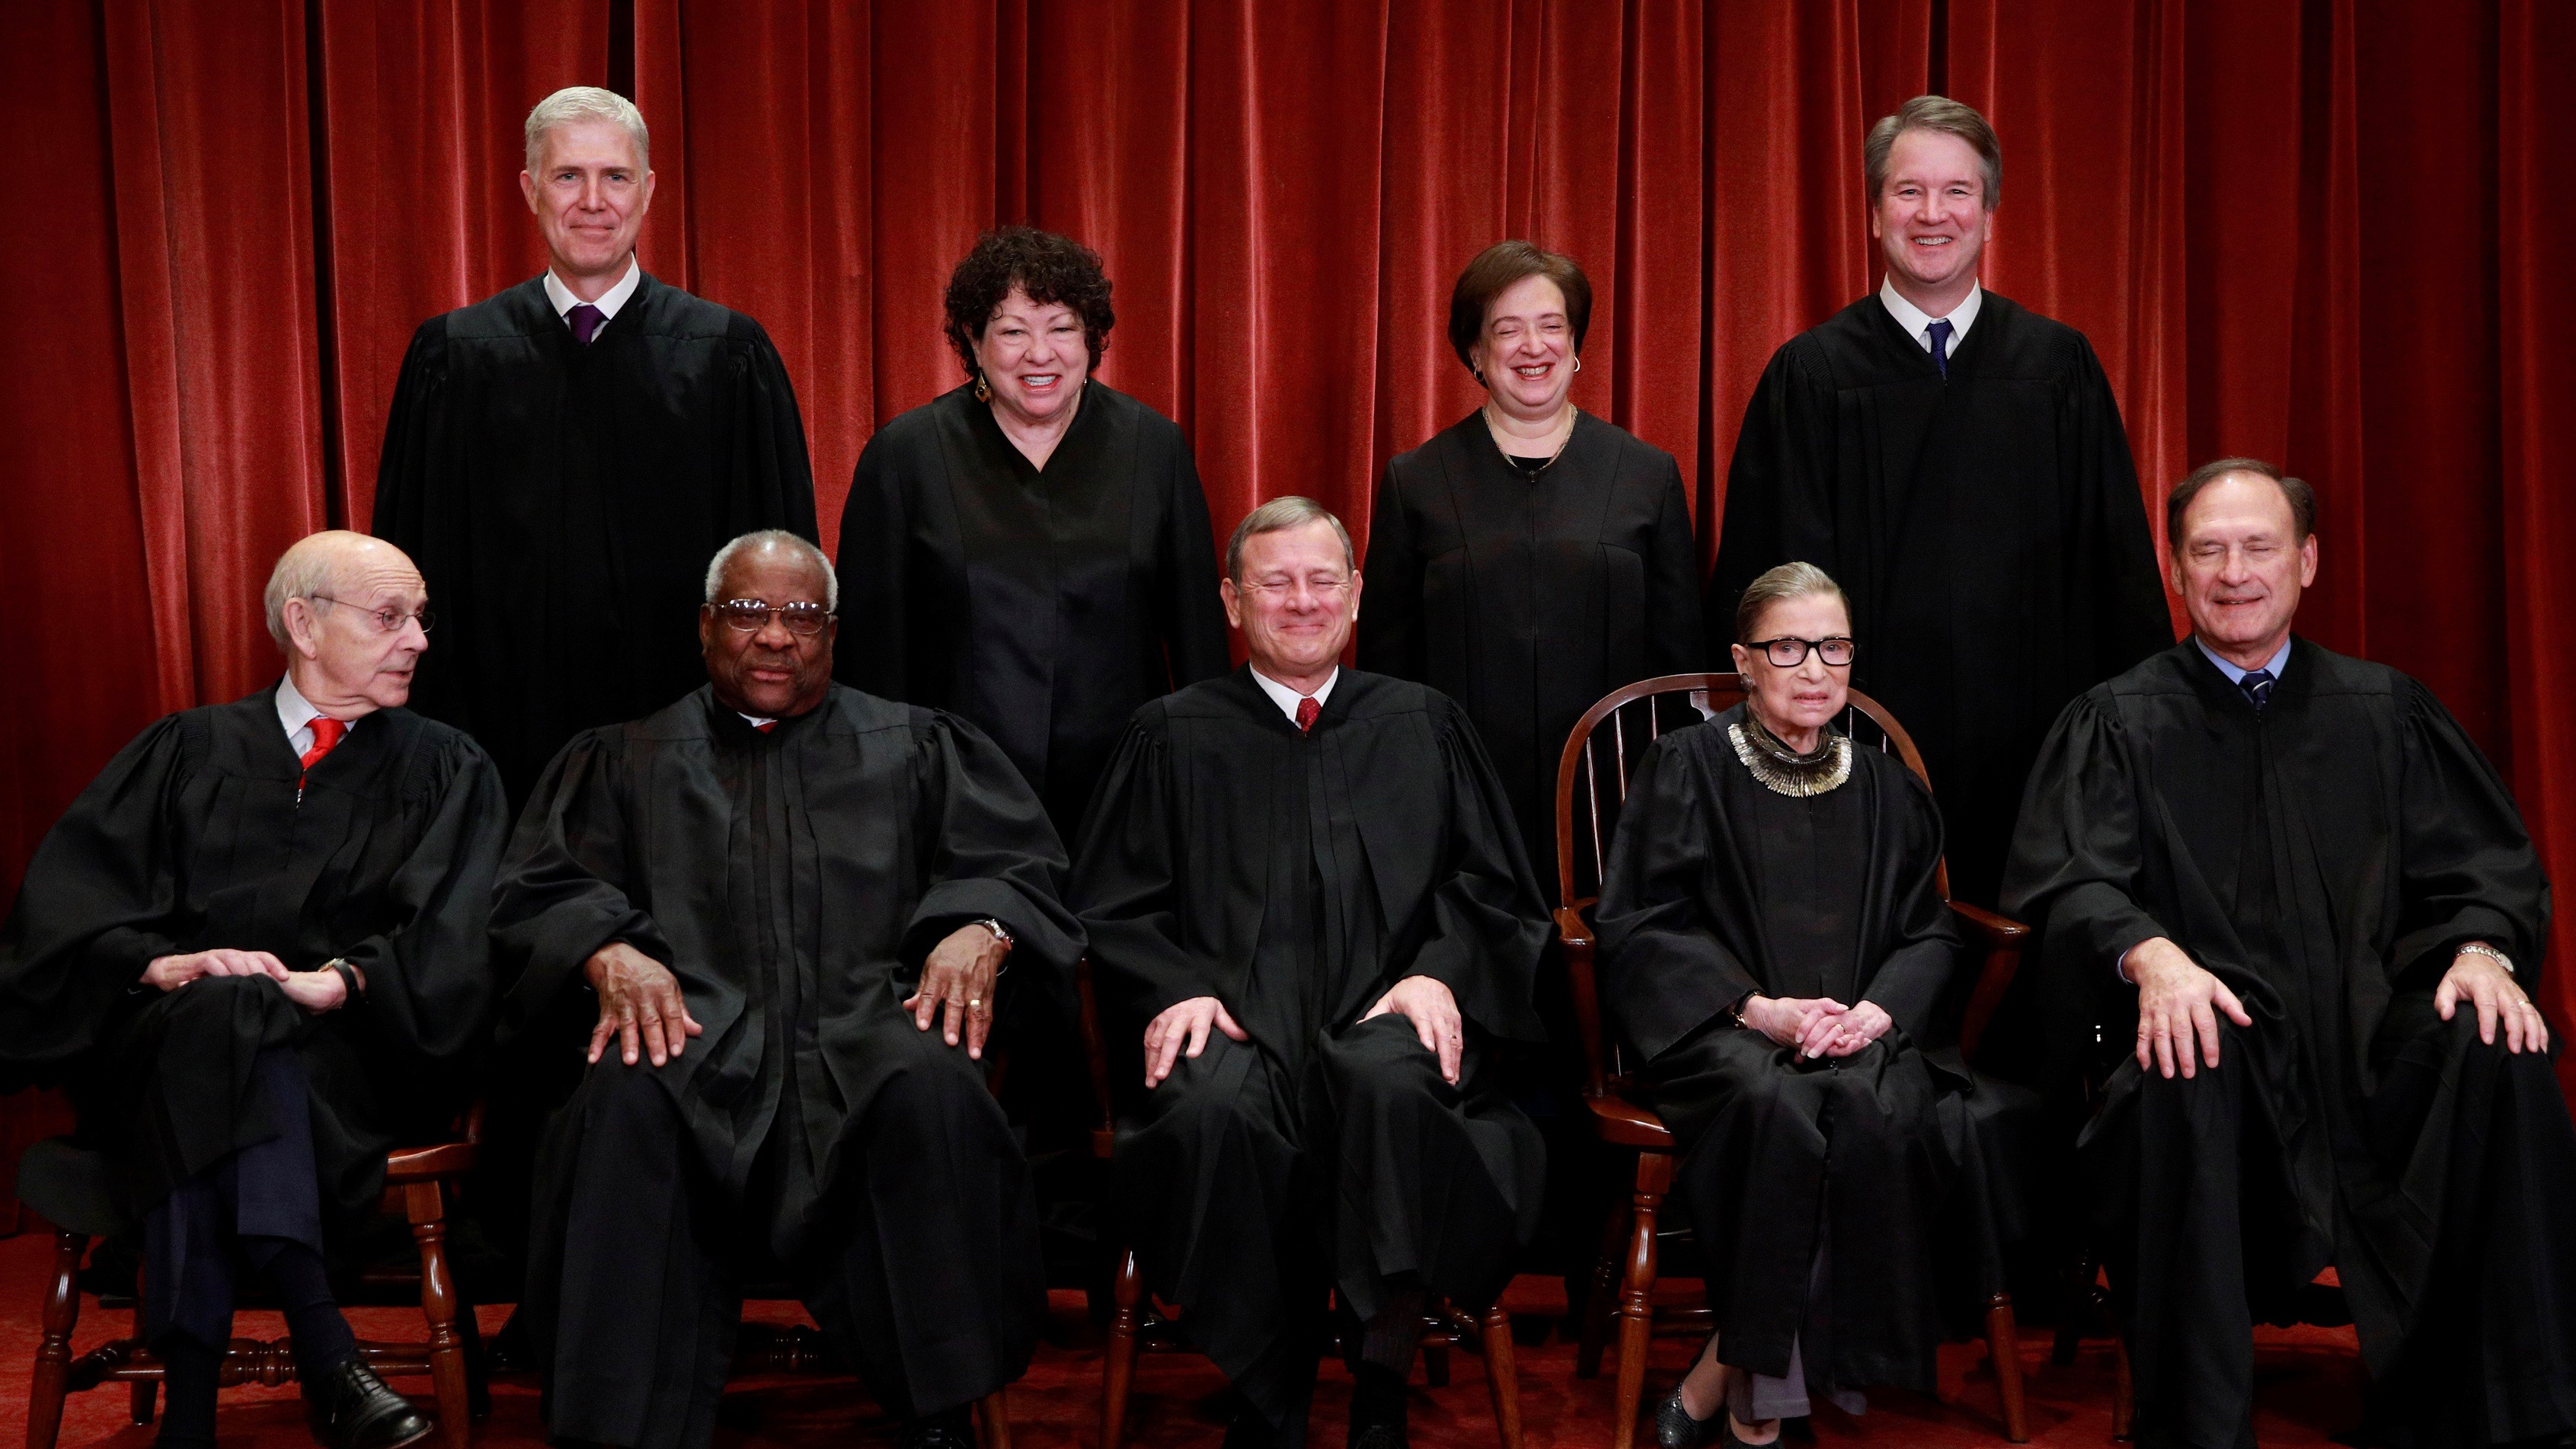 Ruth Bader Ginsburg dishes on the US Supreme Court — Quartz